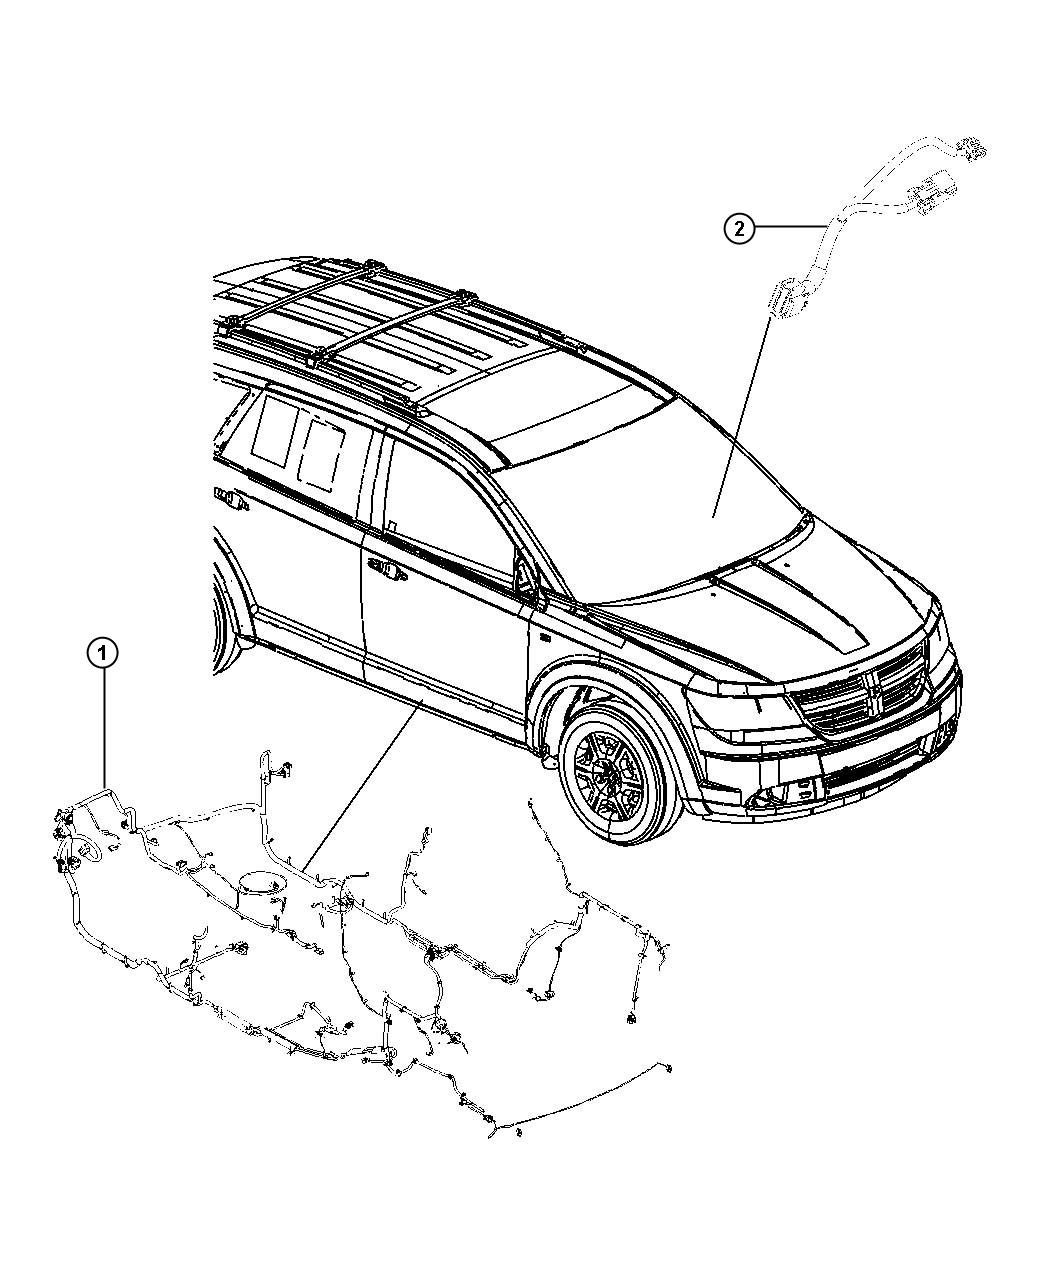 Dodge Journey Wiring. Unified body. Rear, outlet